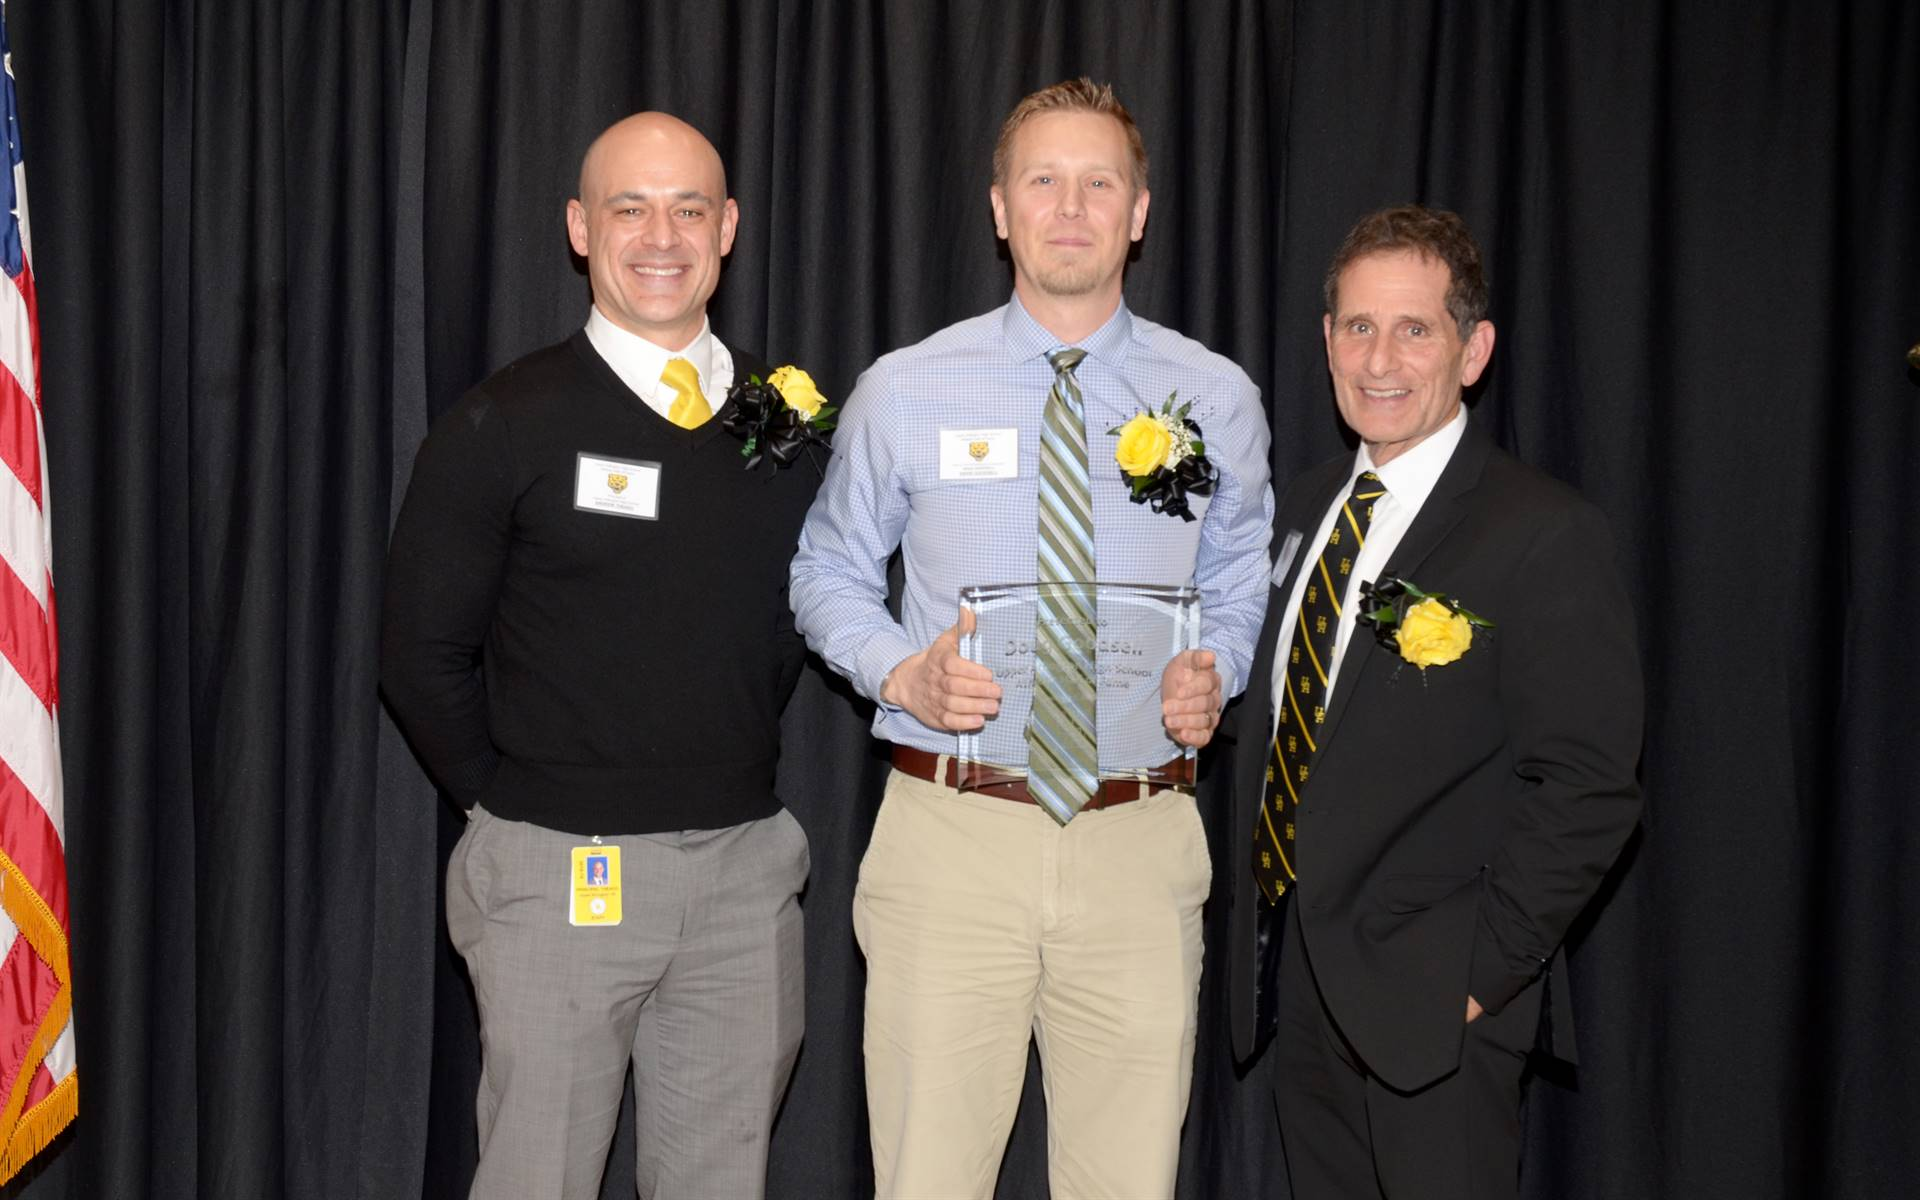 The son of inductee Doug Goodsell with Principal Andrew Theado and Athletic Director Tony Pusateri